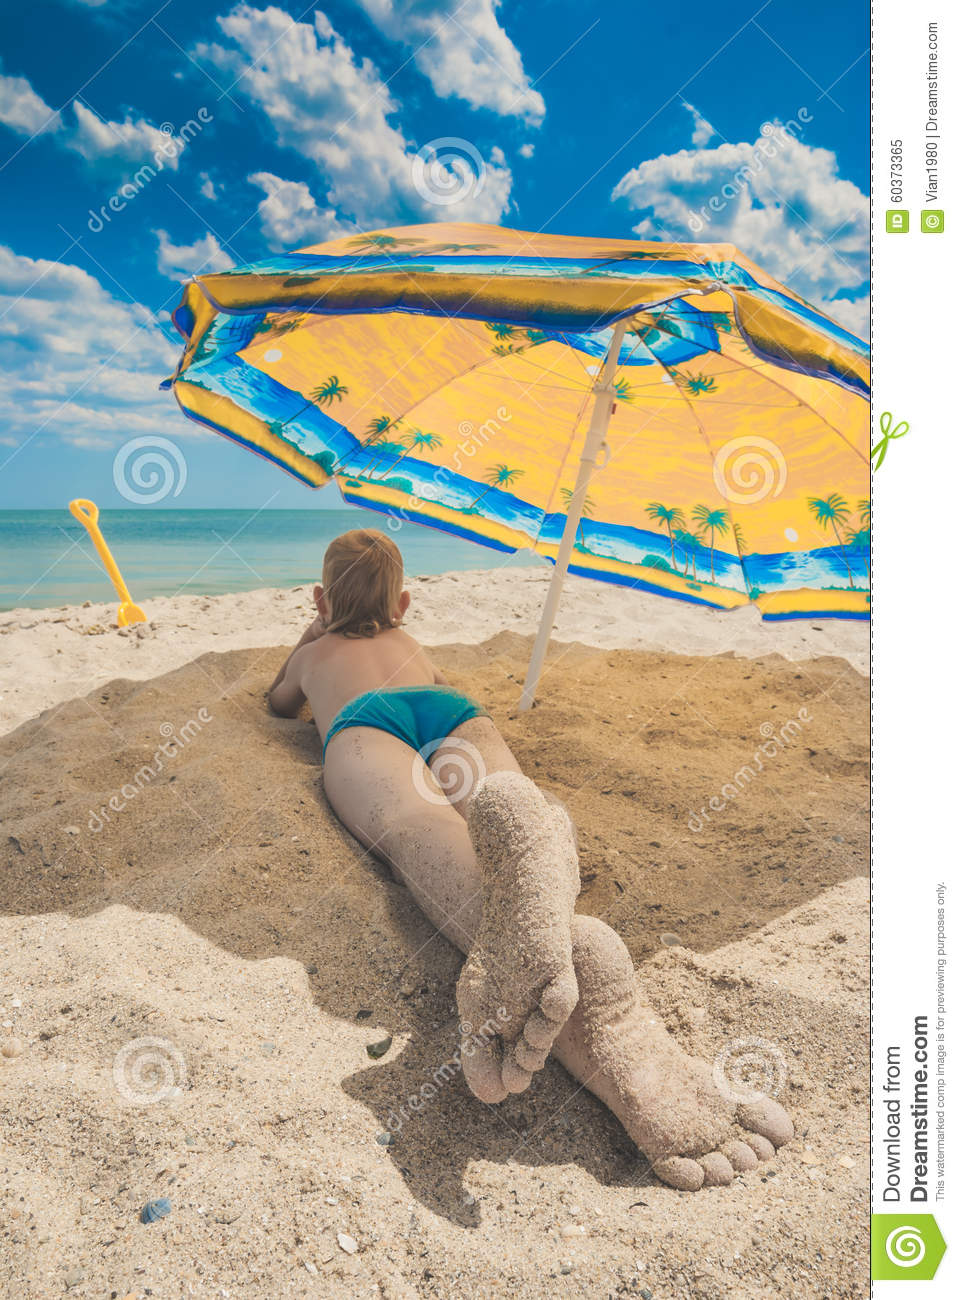 Kids feet in a send 2 stock image. Image of childhood ...